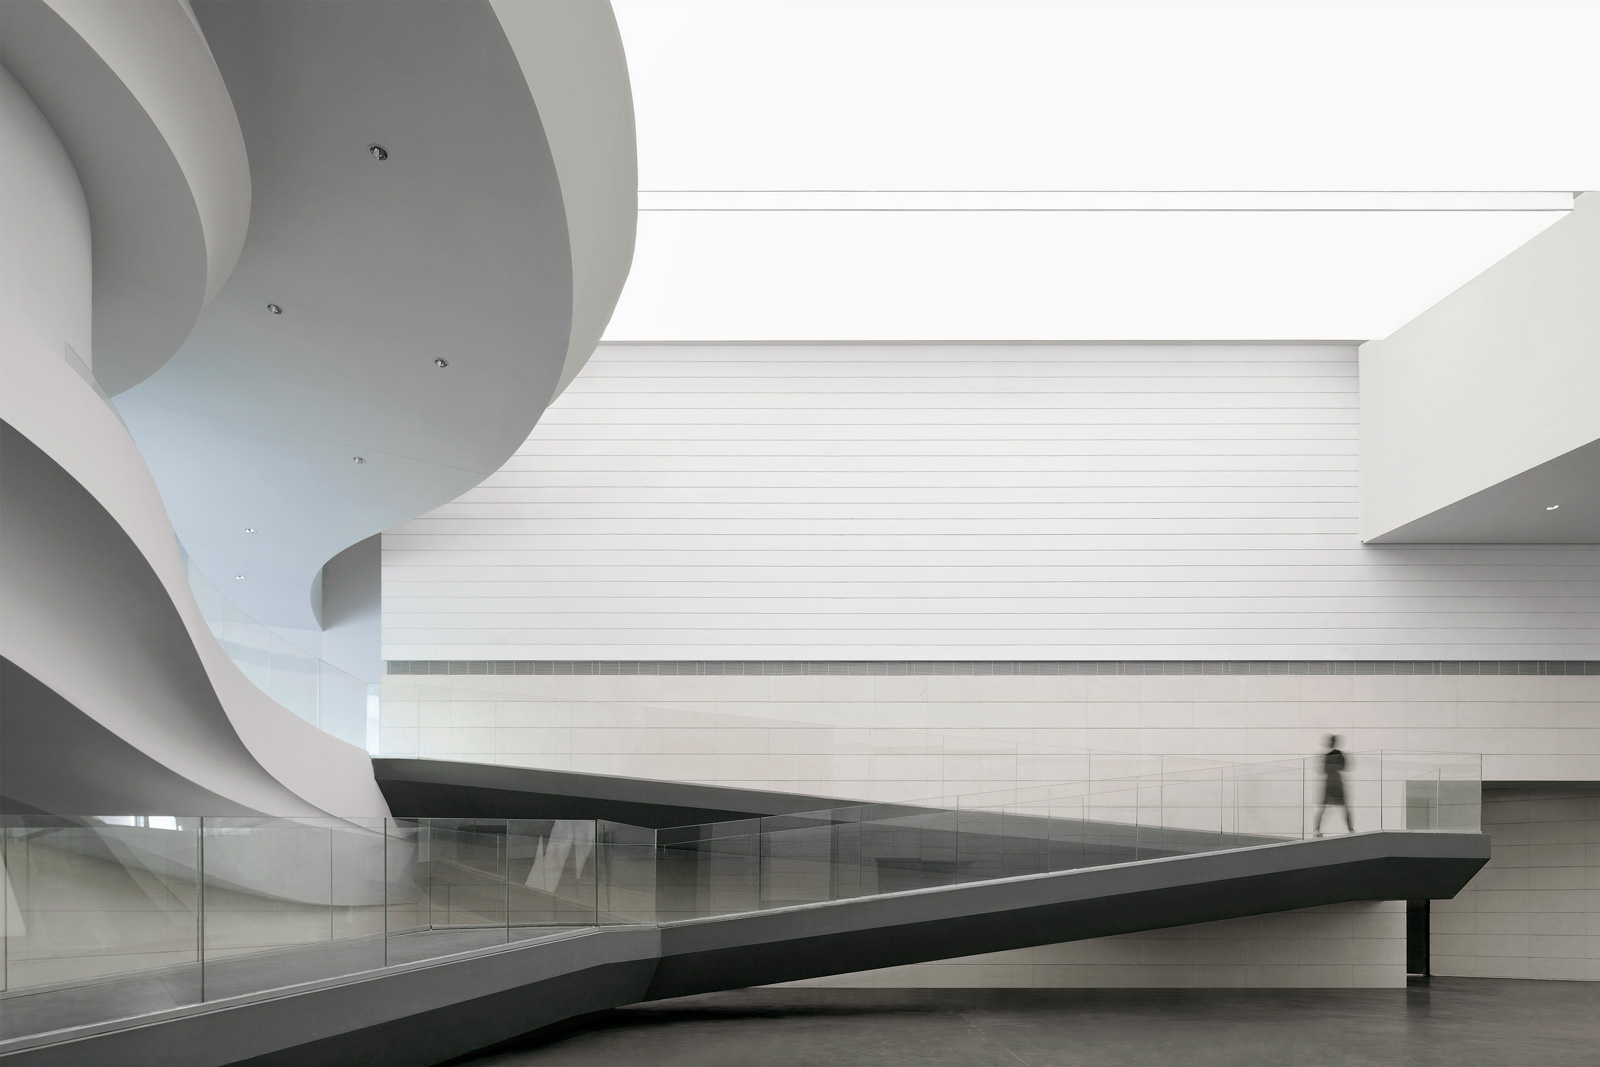 waa Museum of Contemporary Art Yinchuan interior Atrium gallery 未觉建筑 银川当代美术馆 室内 中庭 展示厅